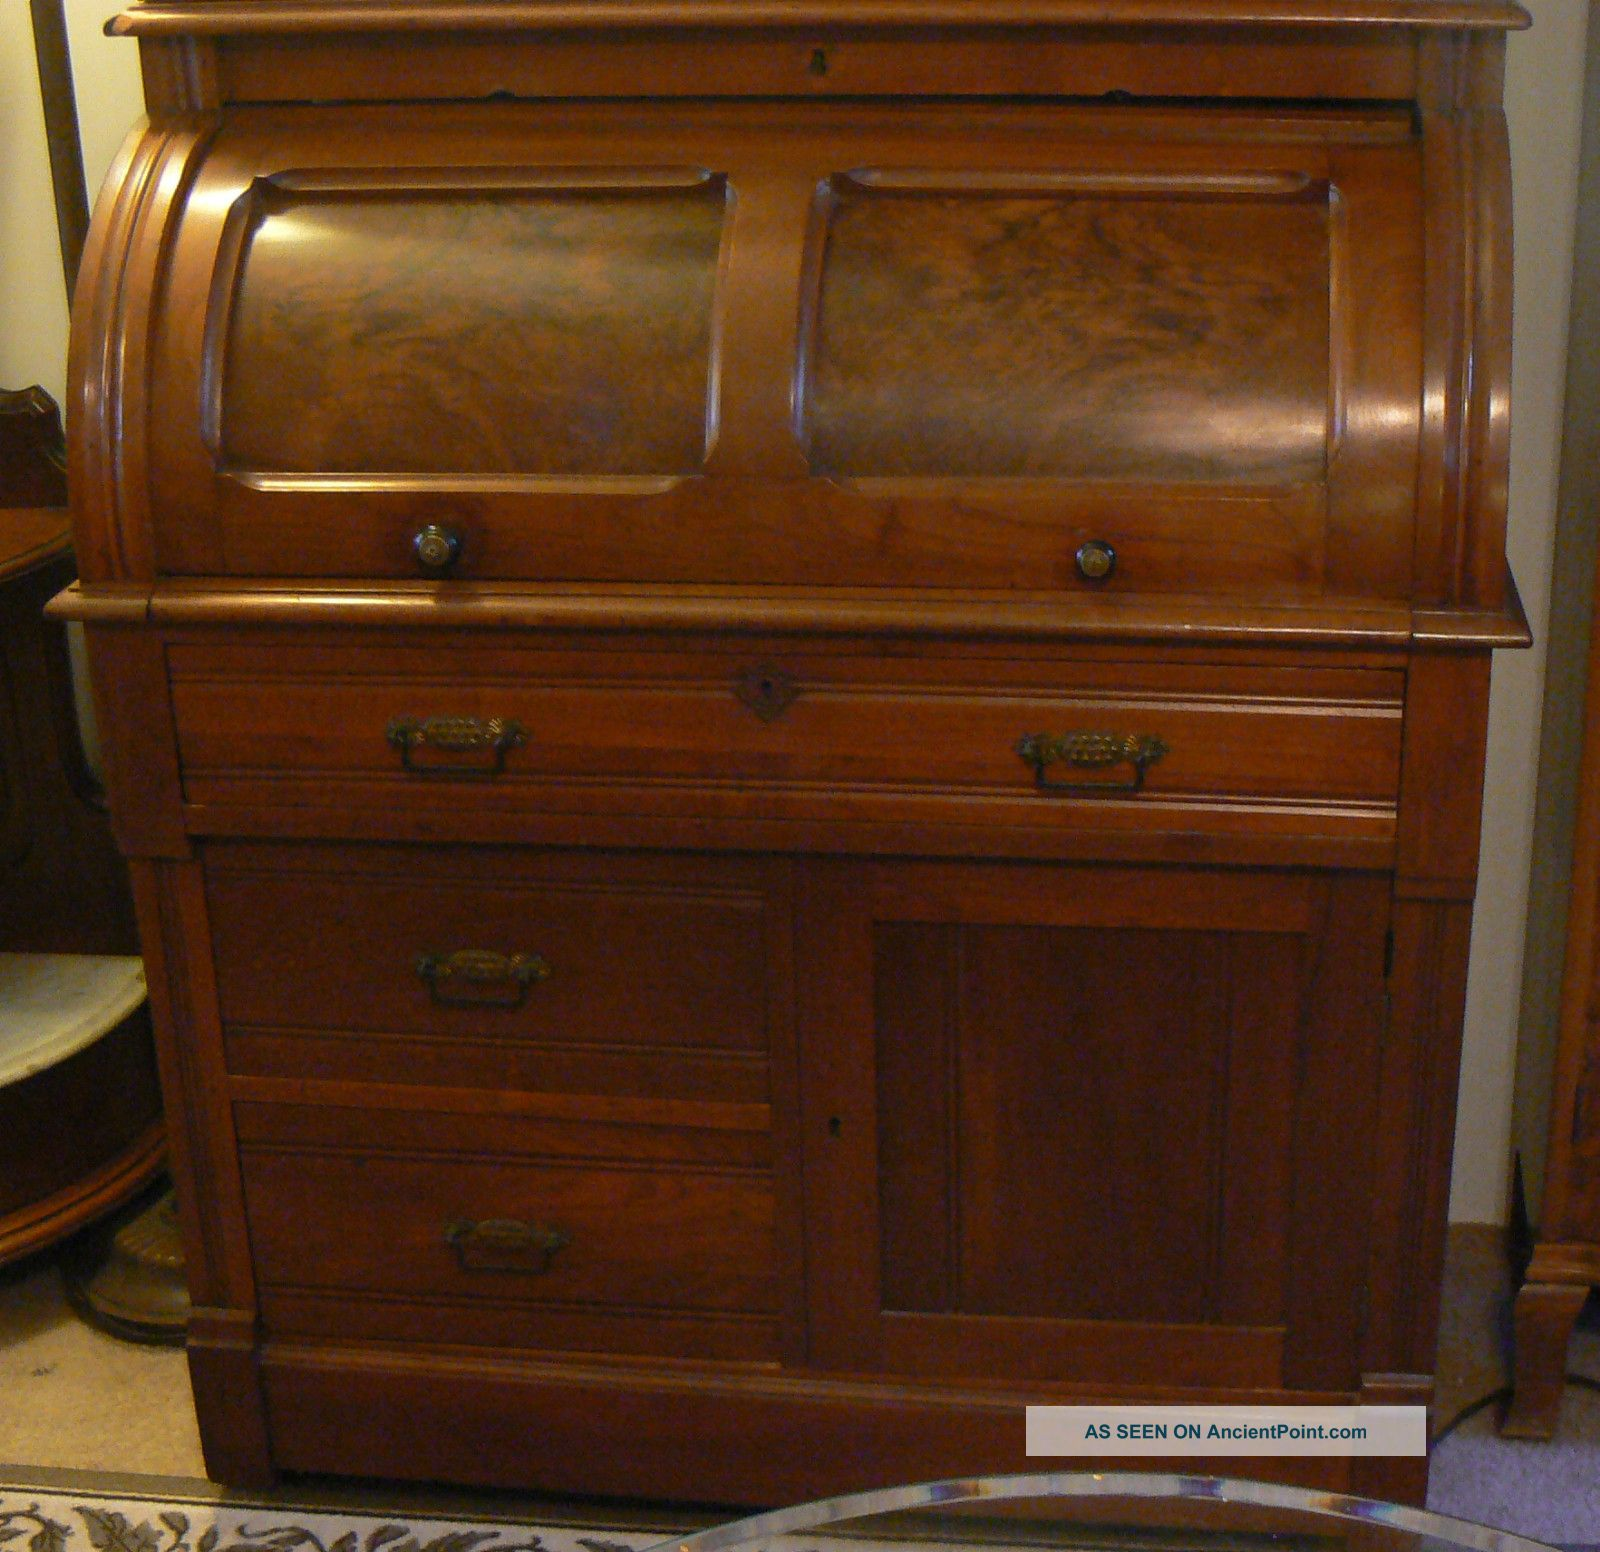 Antique Roll Top Secretary Desk Image And Candle